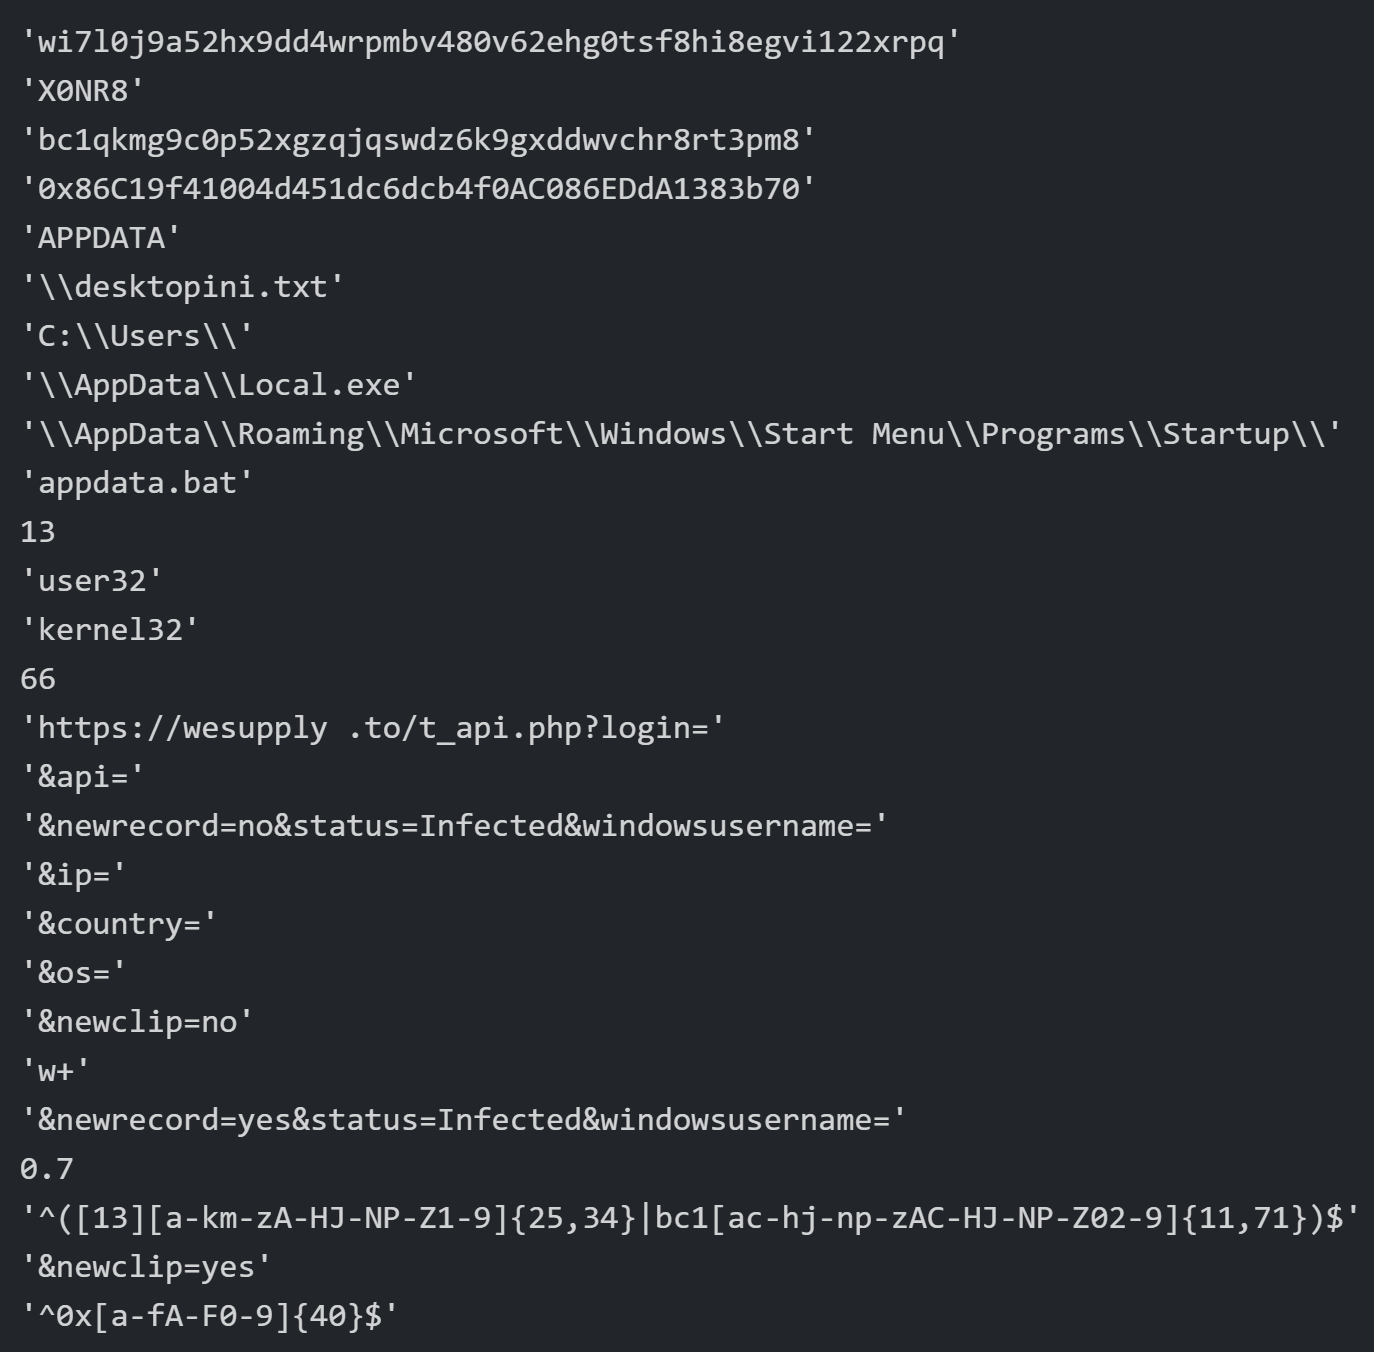 The regular expressions specifically describing the formats of Bitcoin and Ethereum wallets are seen in the constants identified in the decrypted WeSteal sample shown here.